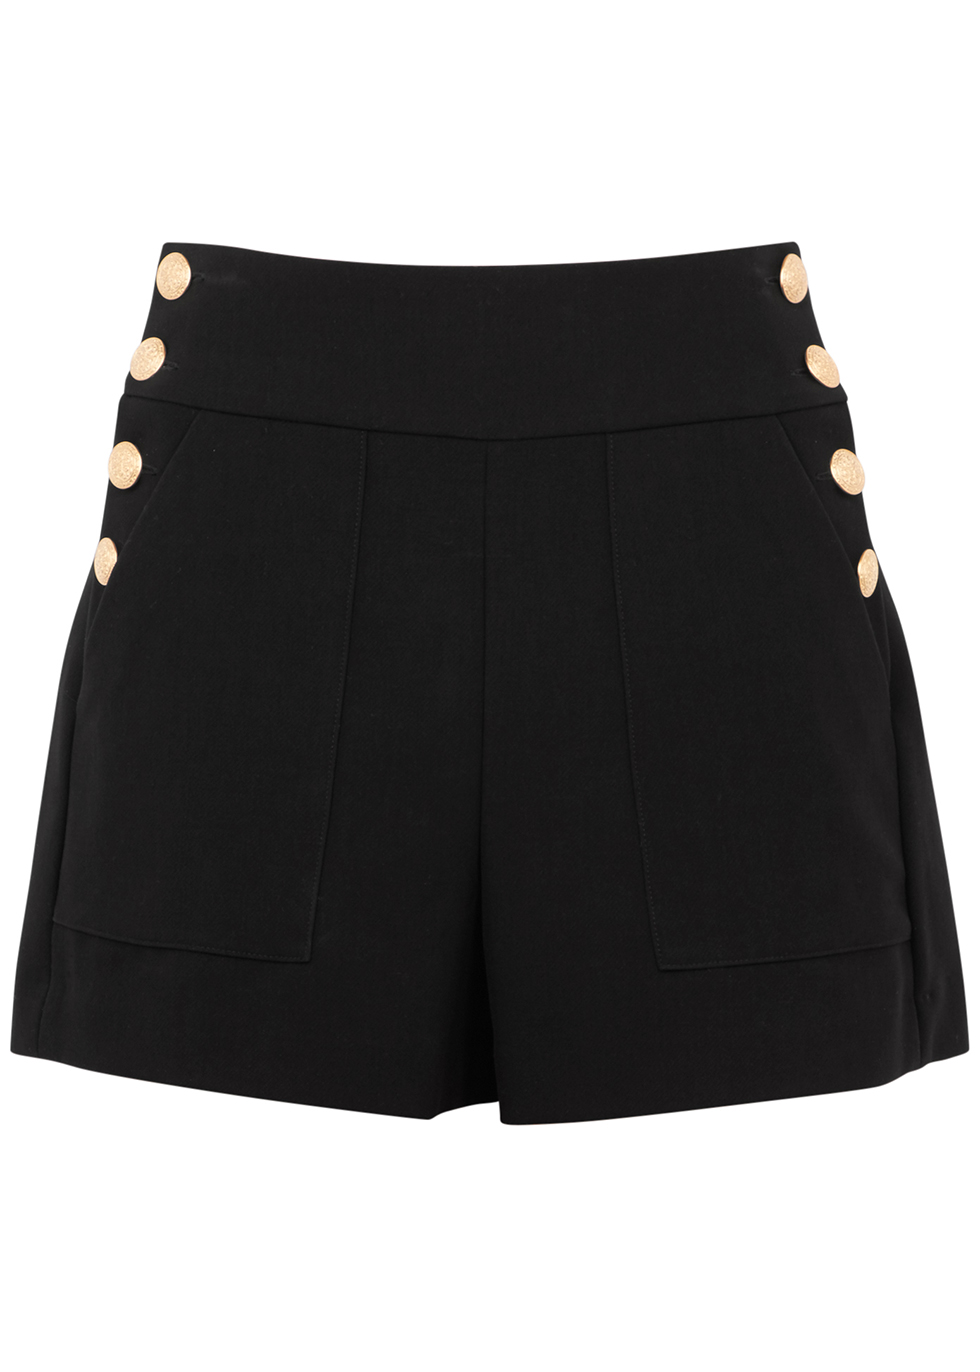 Alice + Olivia Donald High-Rise Sailor Shorts in Black